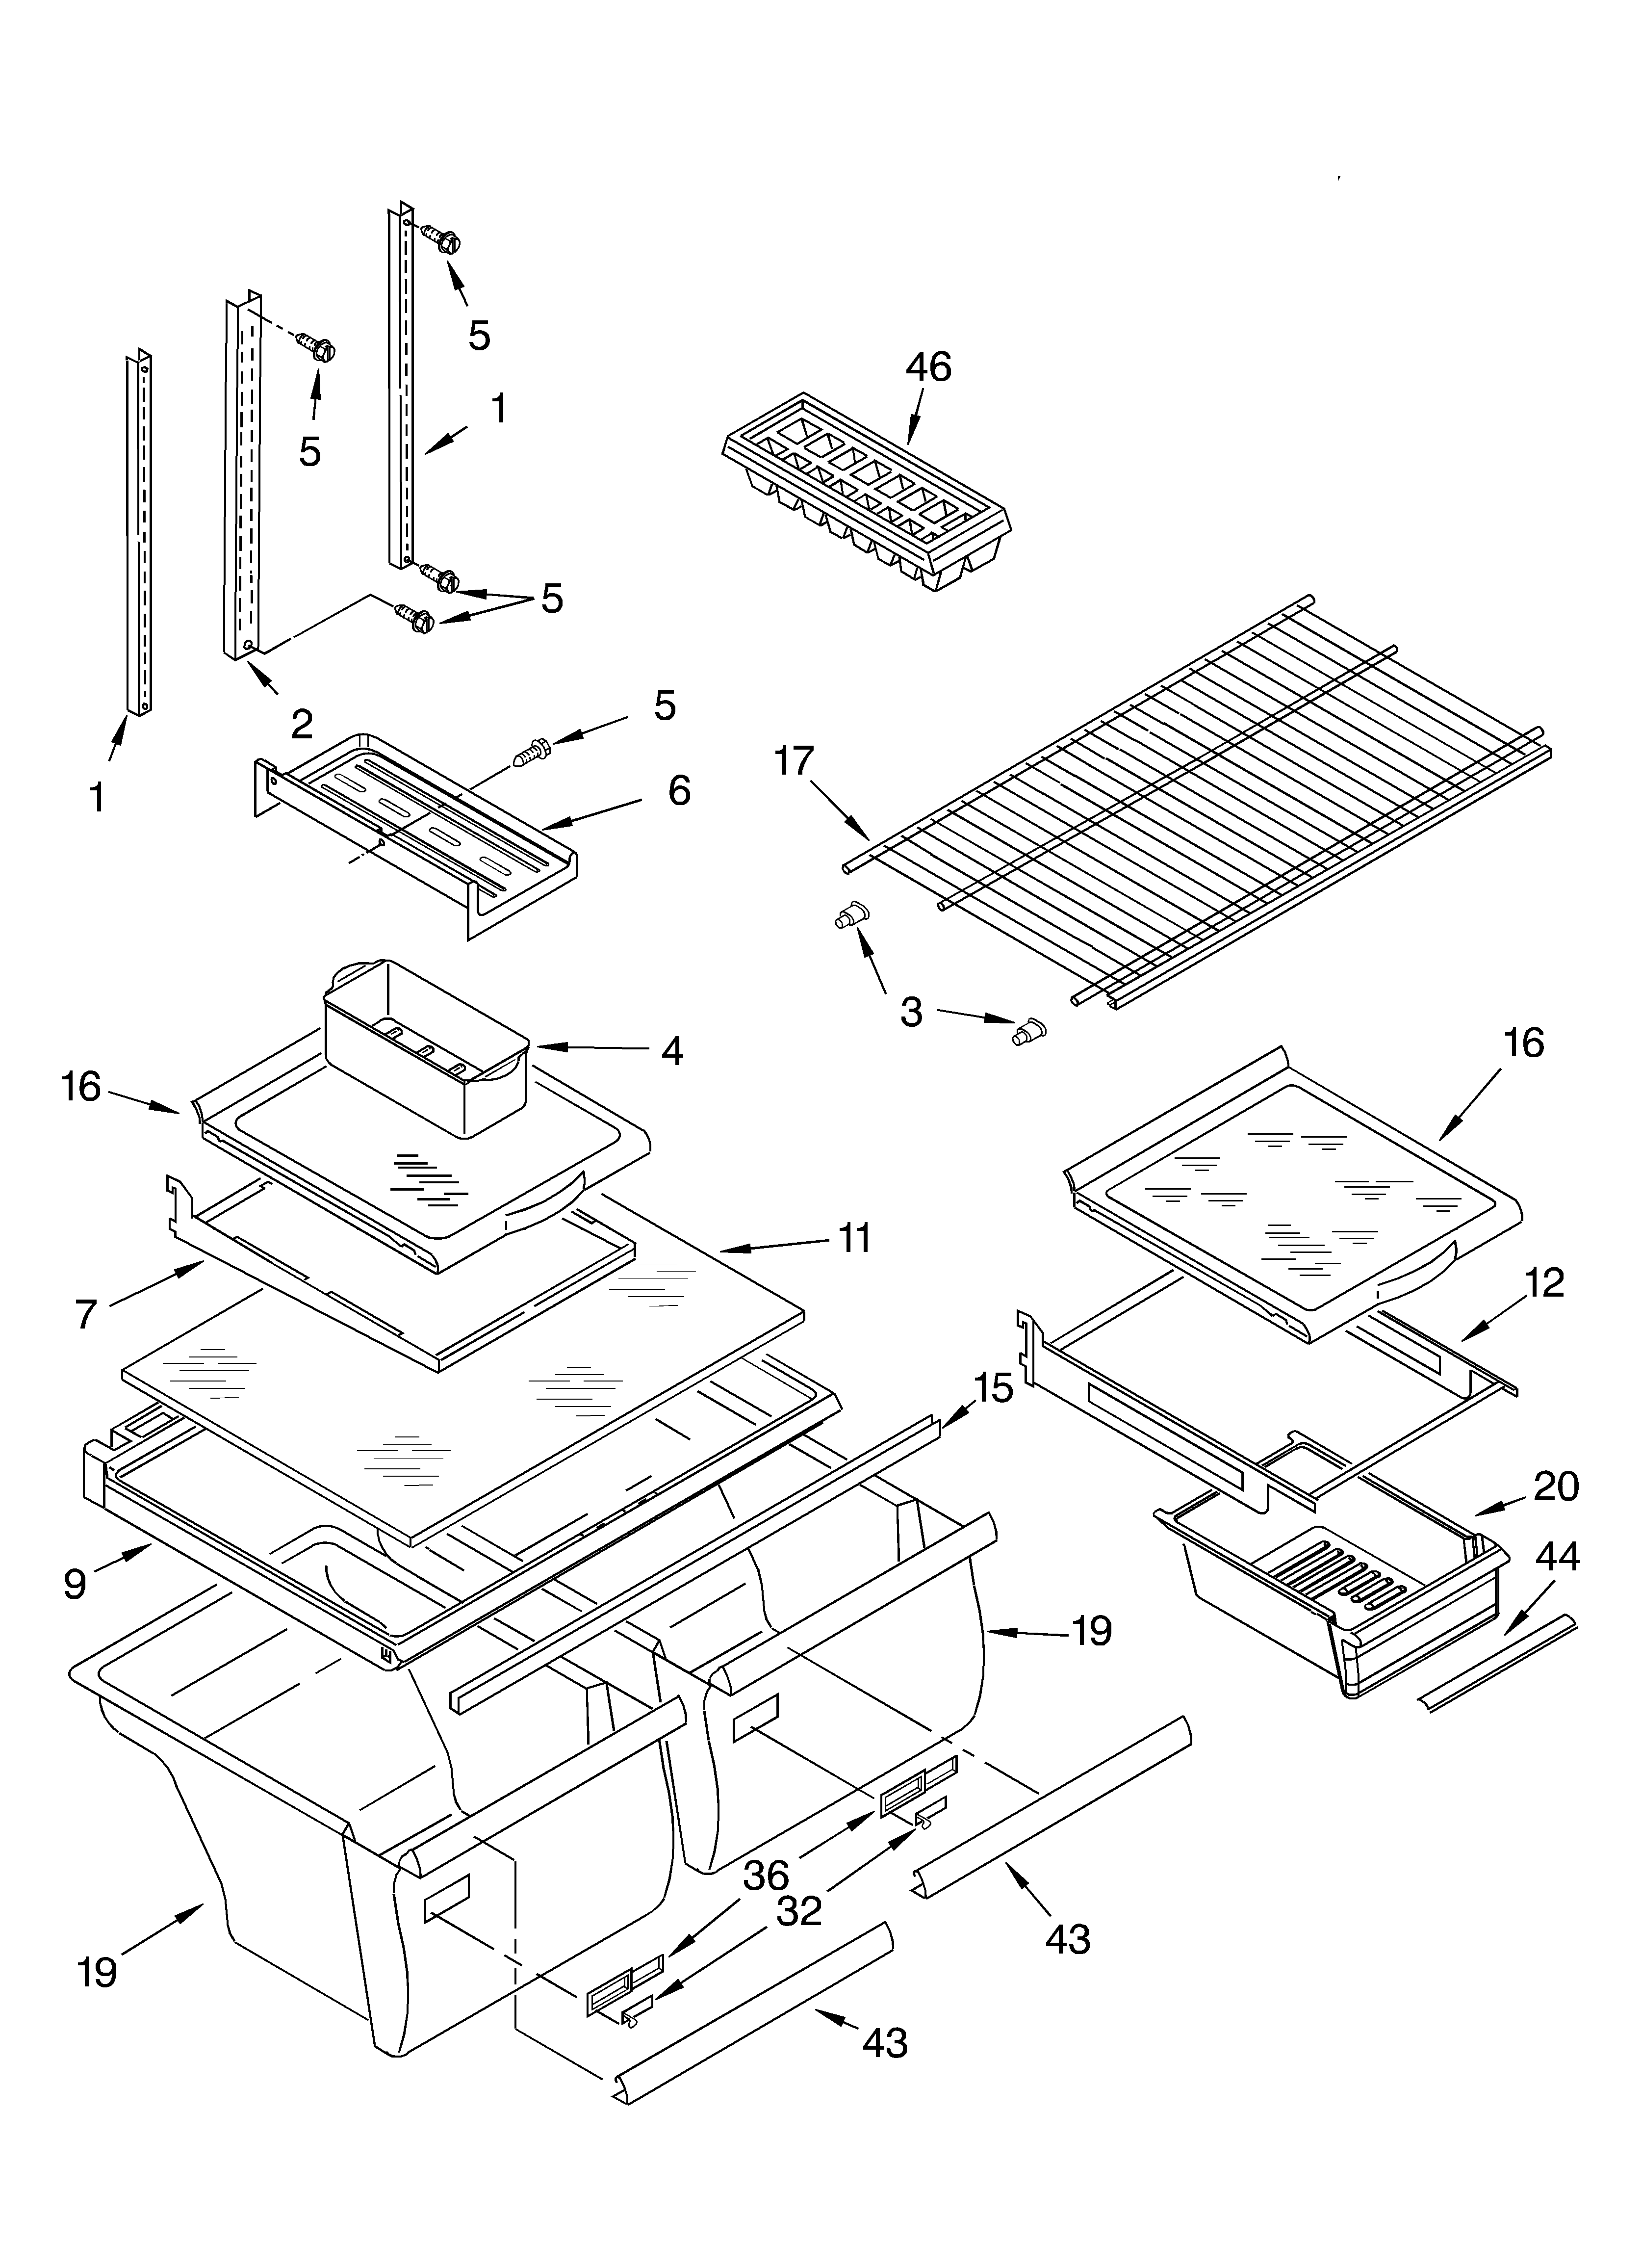 Whirlpool GR2SHKXKB01 shelf diagram